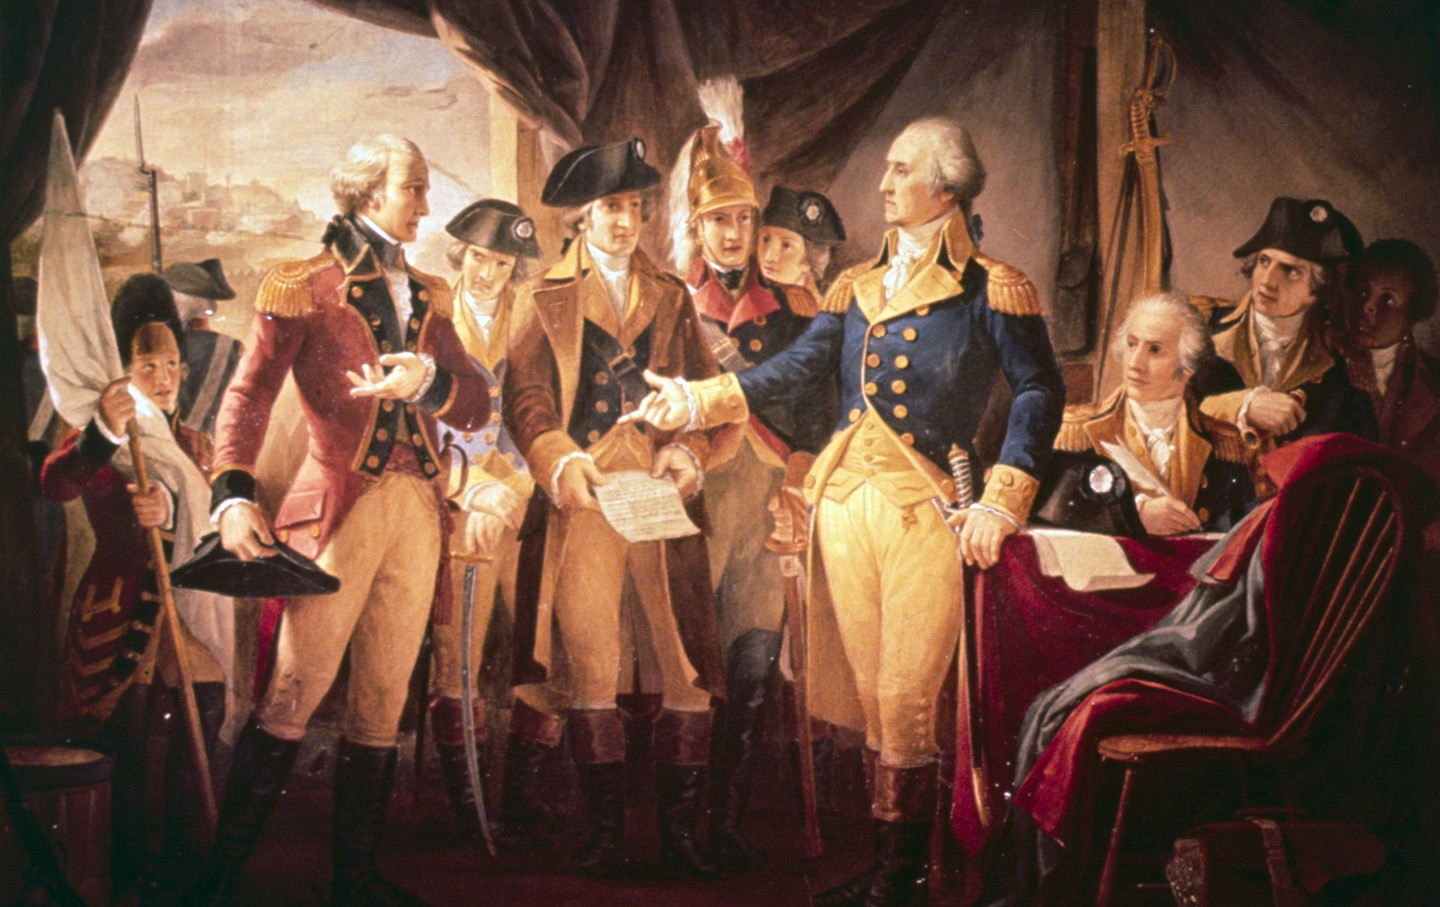 George Washington (1732-1799) with British soldiers at Yorktown.